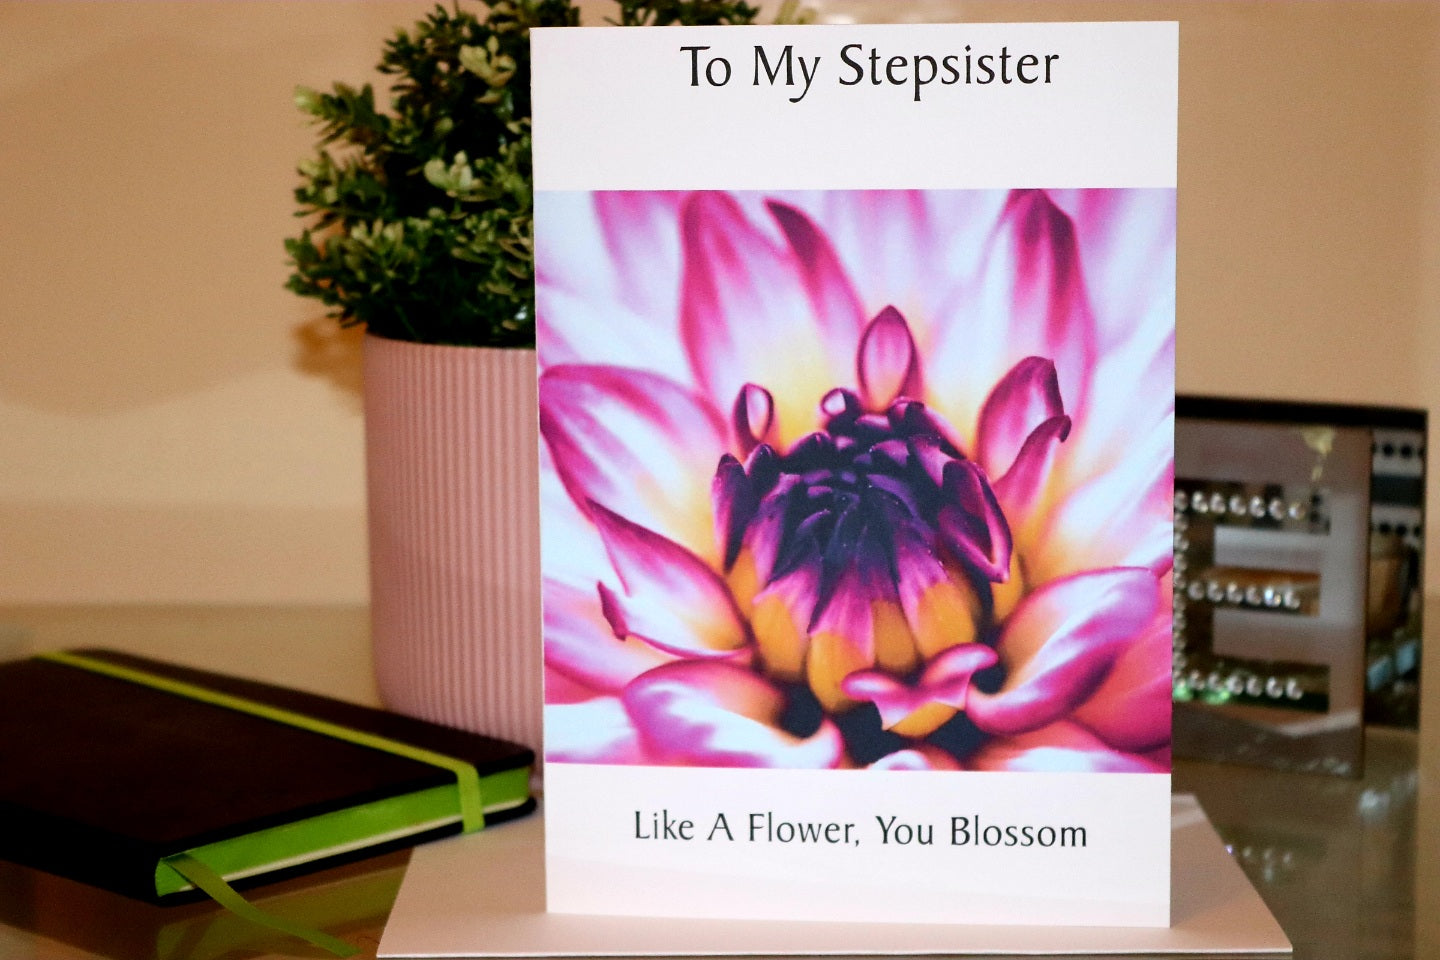 To My Stepsister - Divine Poetry